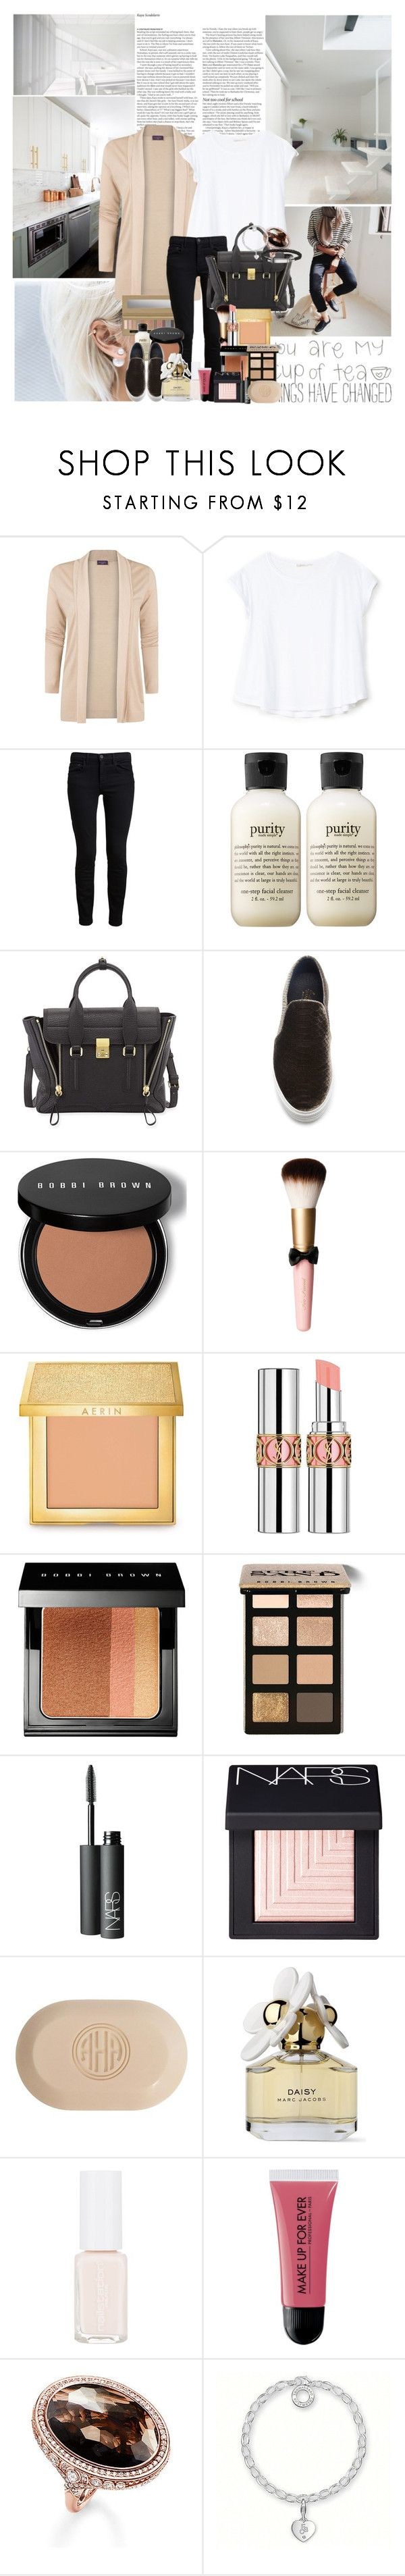 """You look so beautiful in this light"" by airplane ❤ liked on Polyvore featuring ASOS, MANGO, Bershka, Proenza Schouler, philosophy, 3.1 Phillip Lim, Joshua's, Bobbi Brown Cosmetics, AERIN and Yves Saint Laurent"